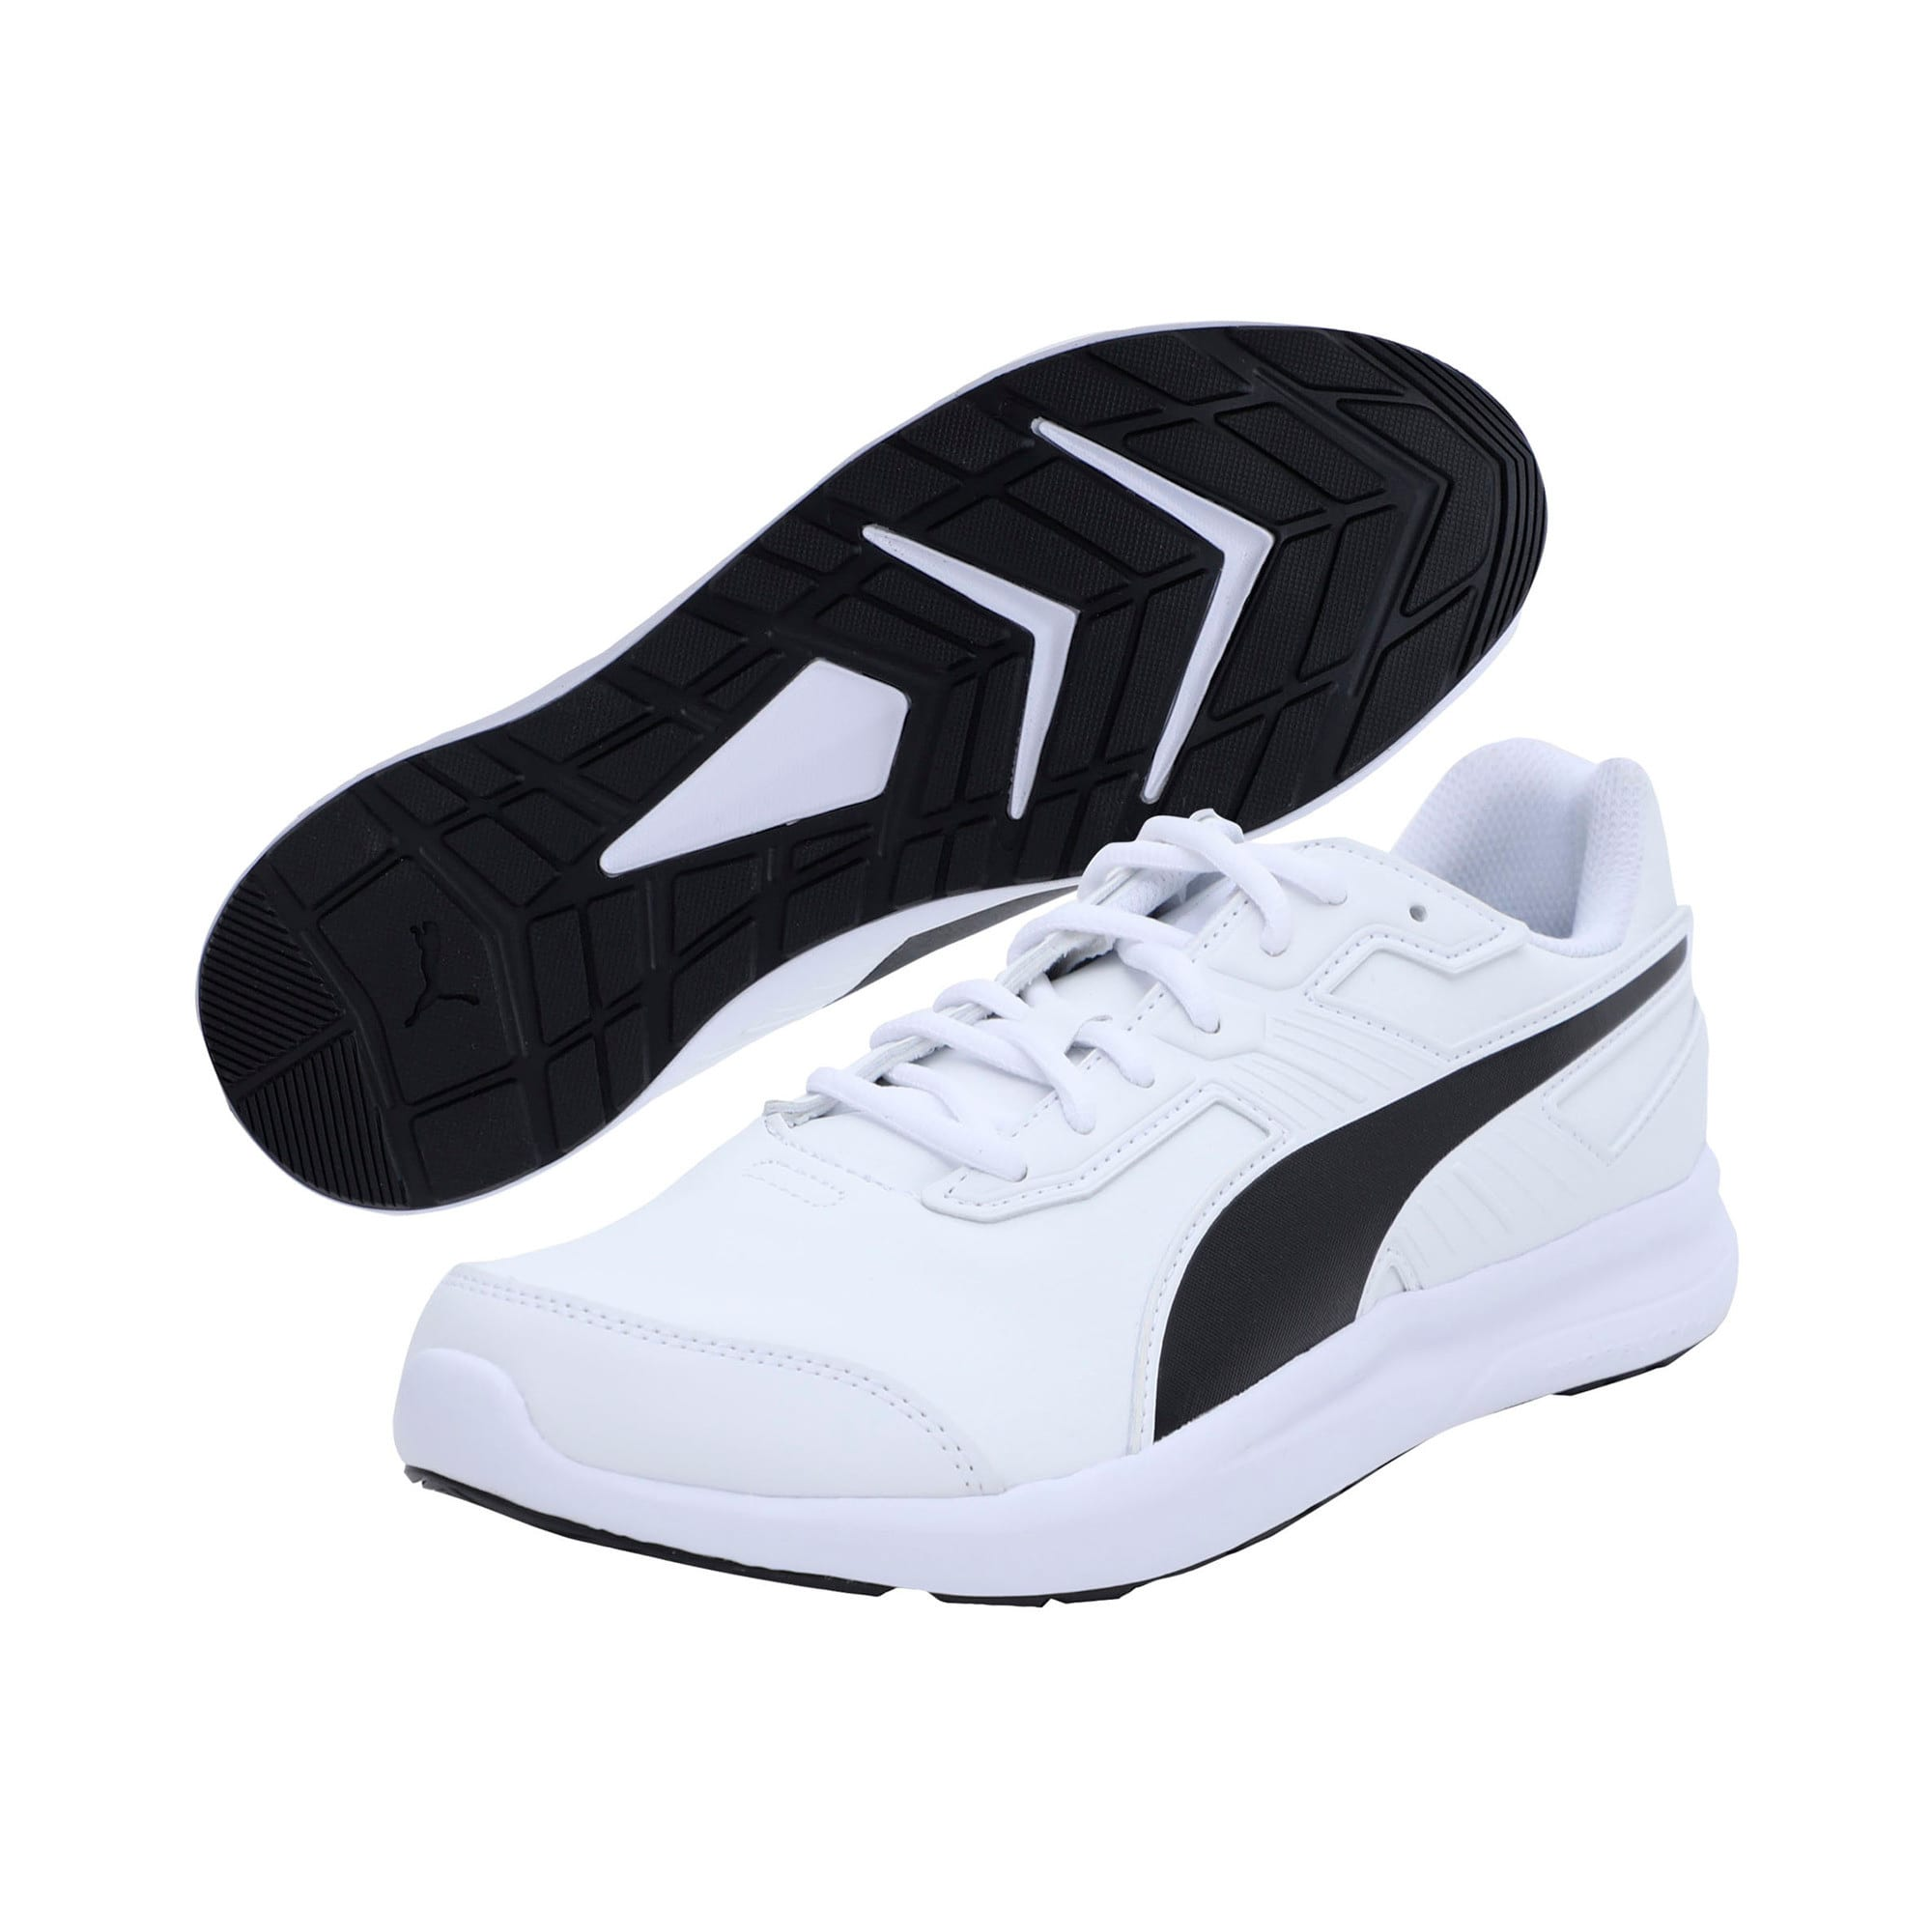 Thumbnail 2 of Escaper SL Trainers, Puma White-Puma Black, medium-IND